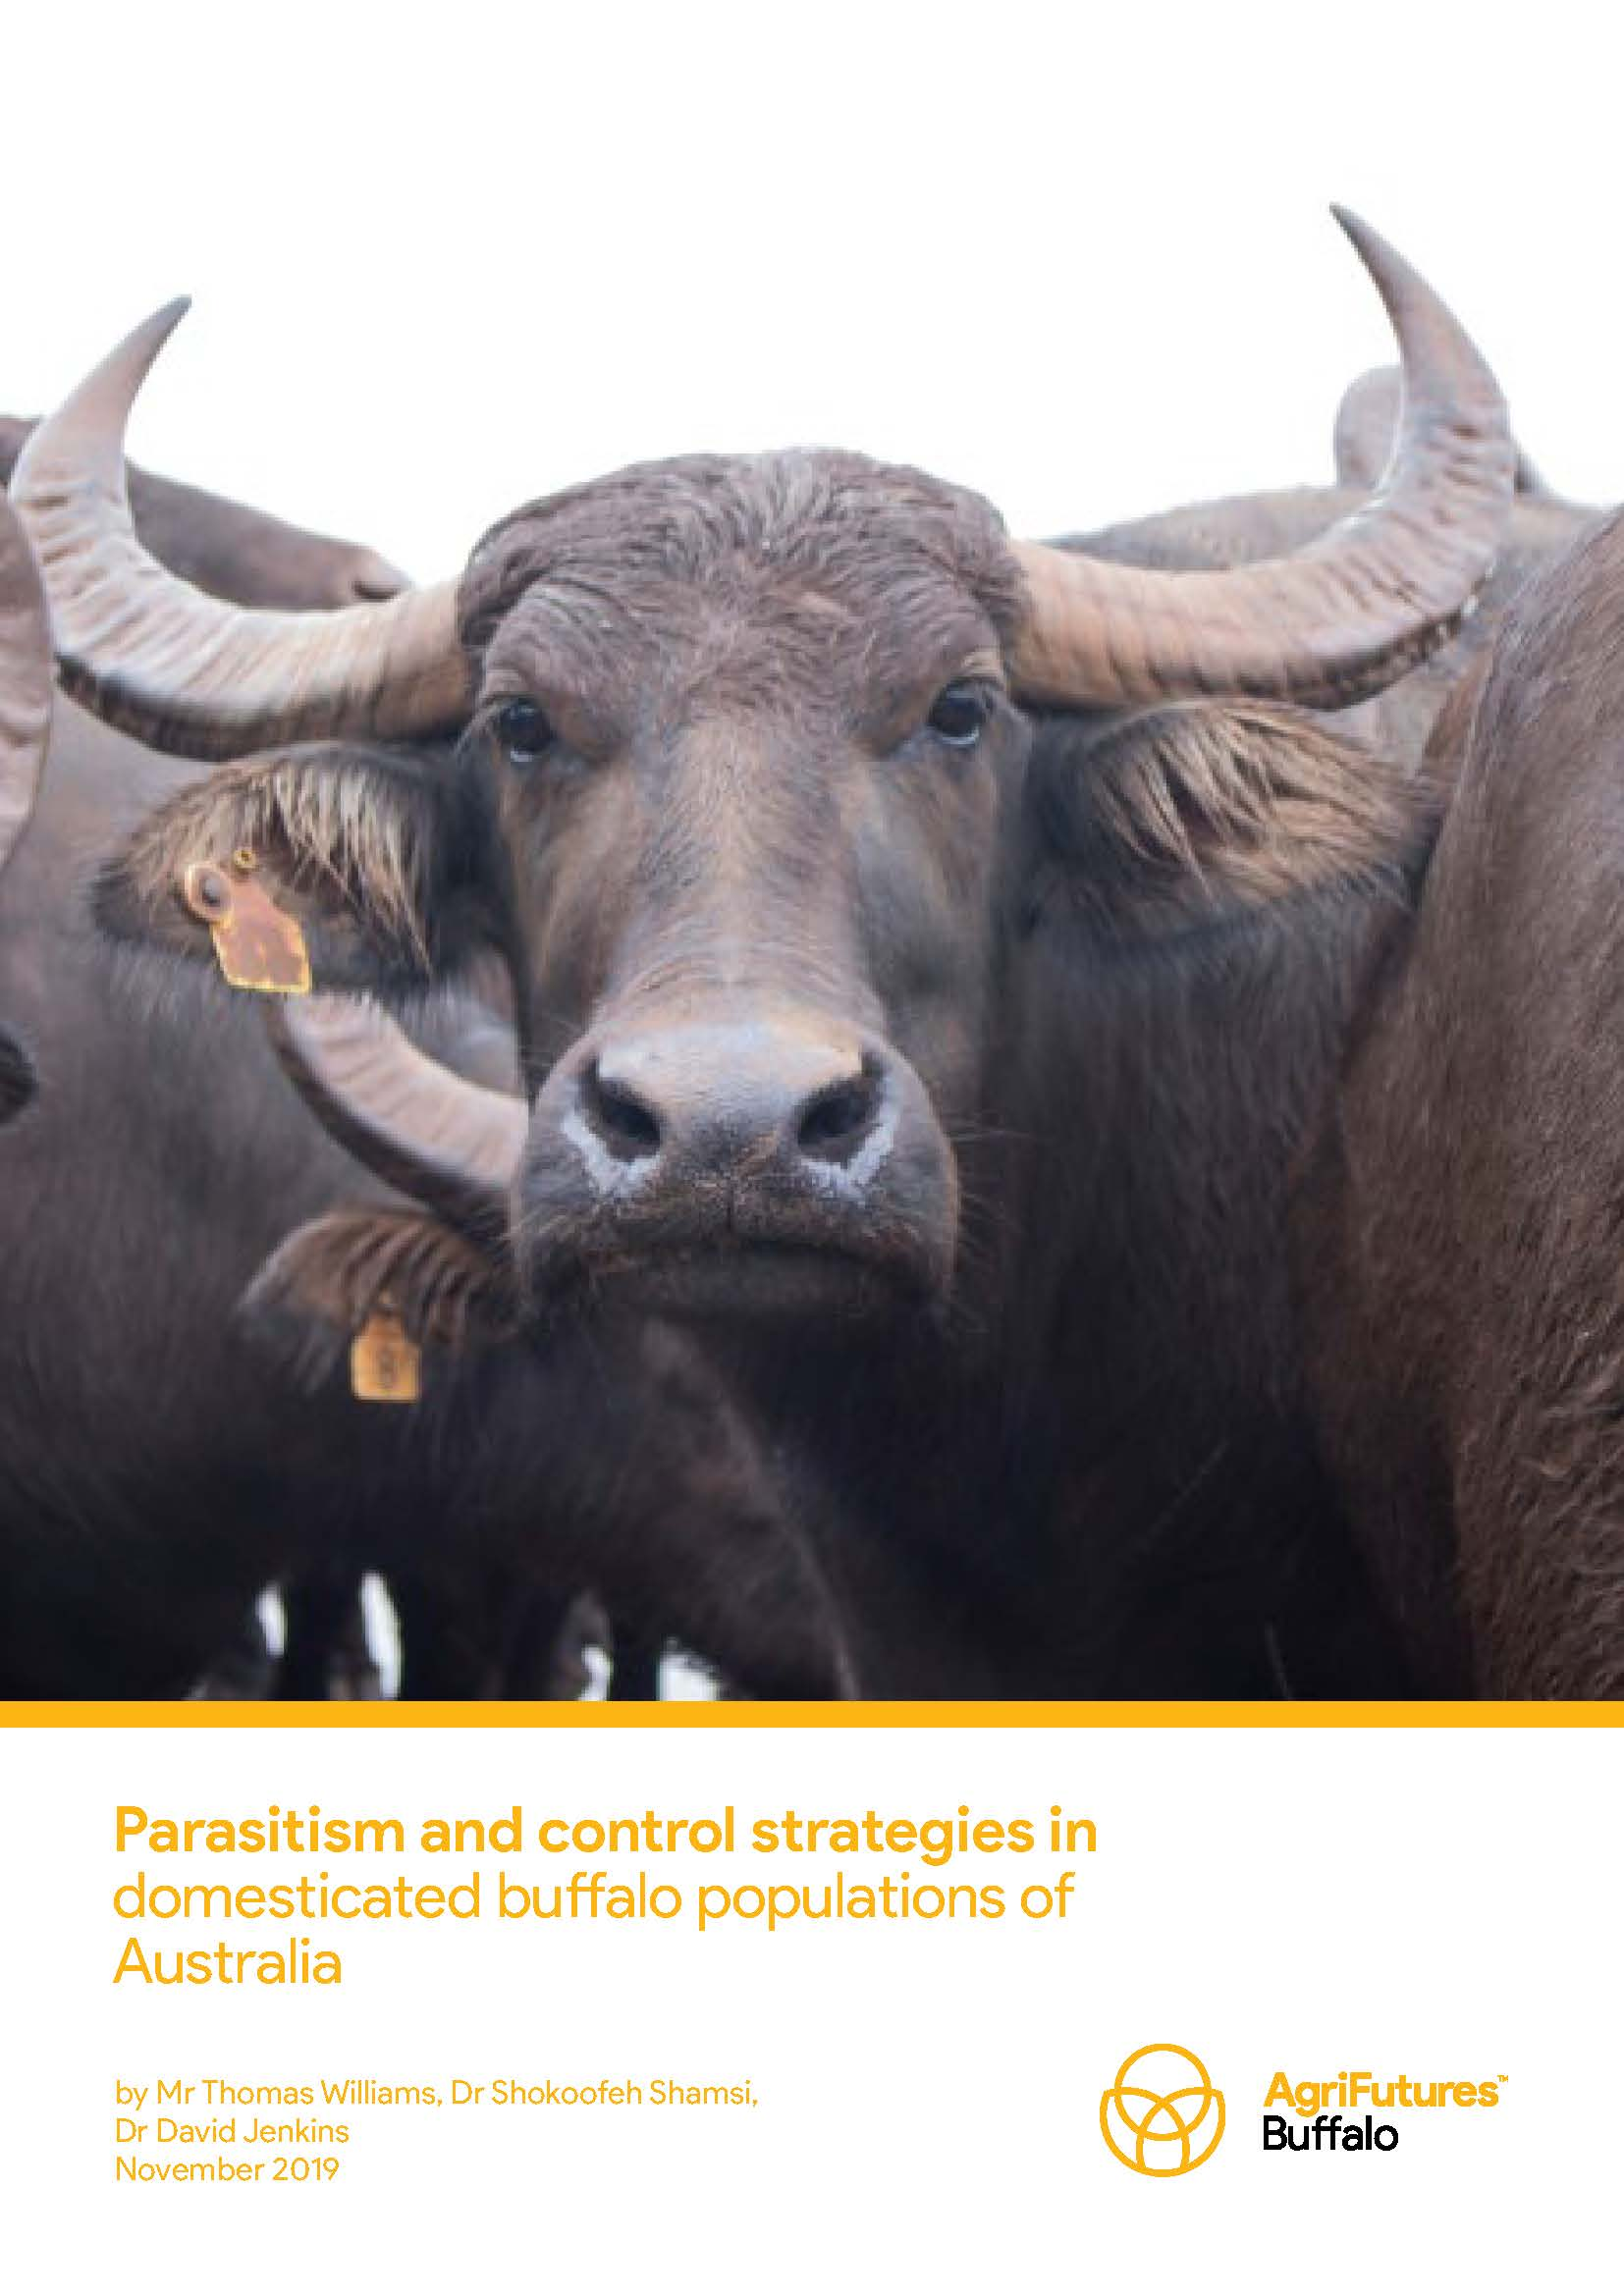 Parasitism and control strategies in domesticated buffalo populations of Australia - image